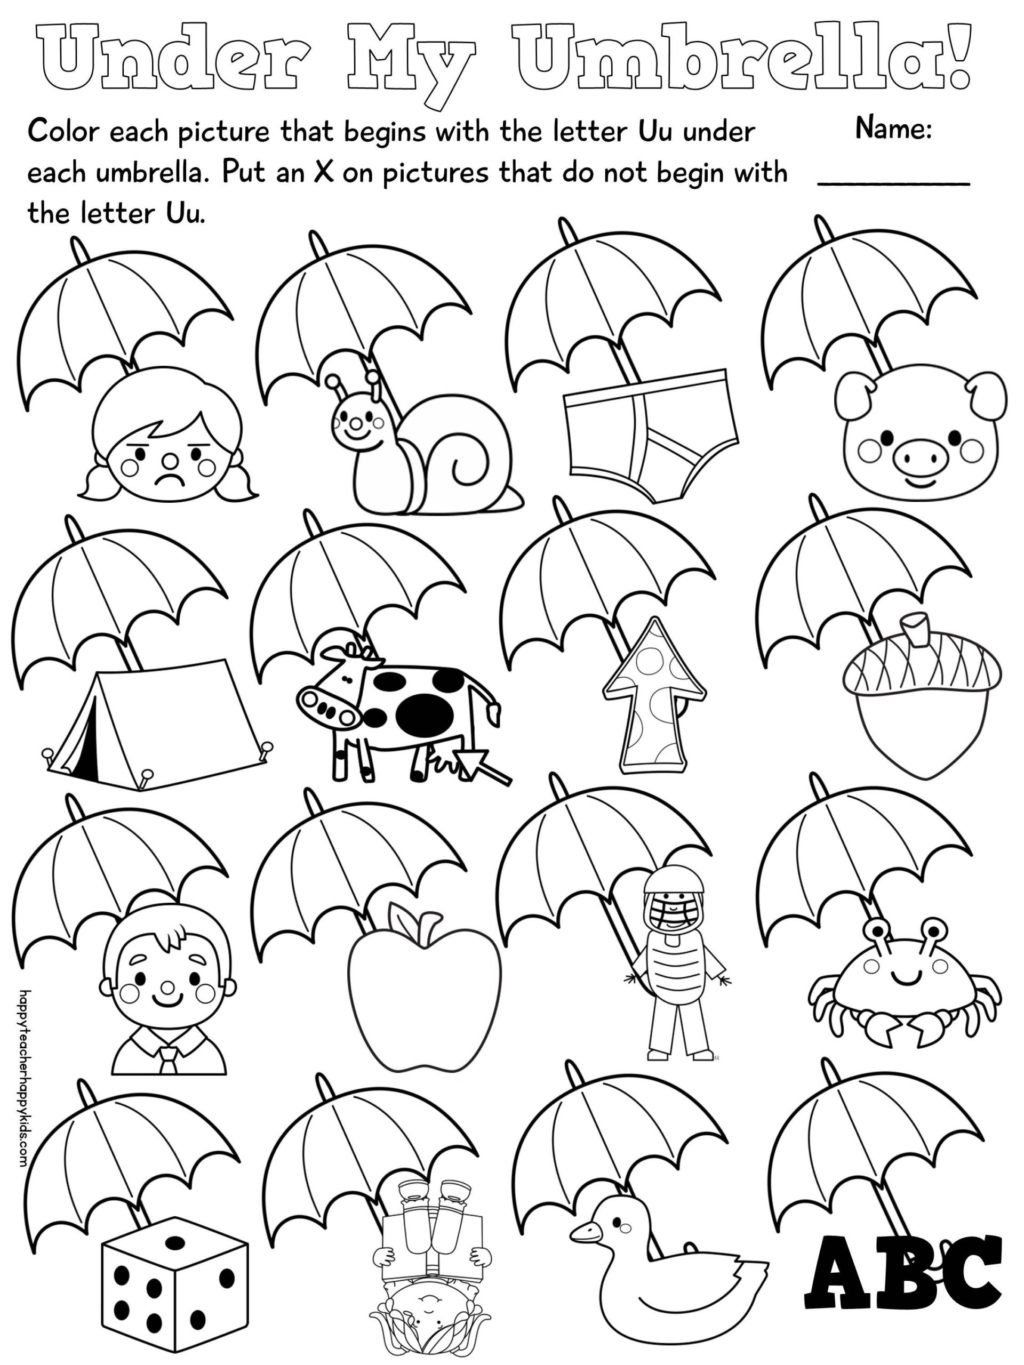 Thanksgiving Math Worksheets Kindergarten Worksheet Kindergarten Worksheets Free Printable In 2020 Phonics Worksheets Thanksgiving Math Worksheets Jolly Phonics